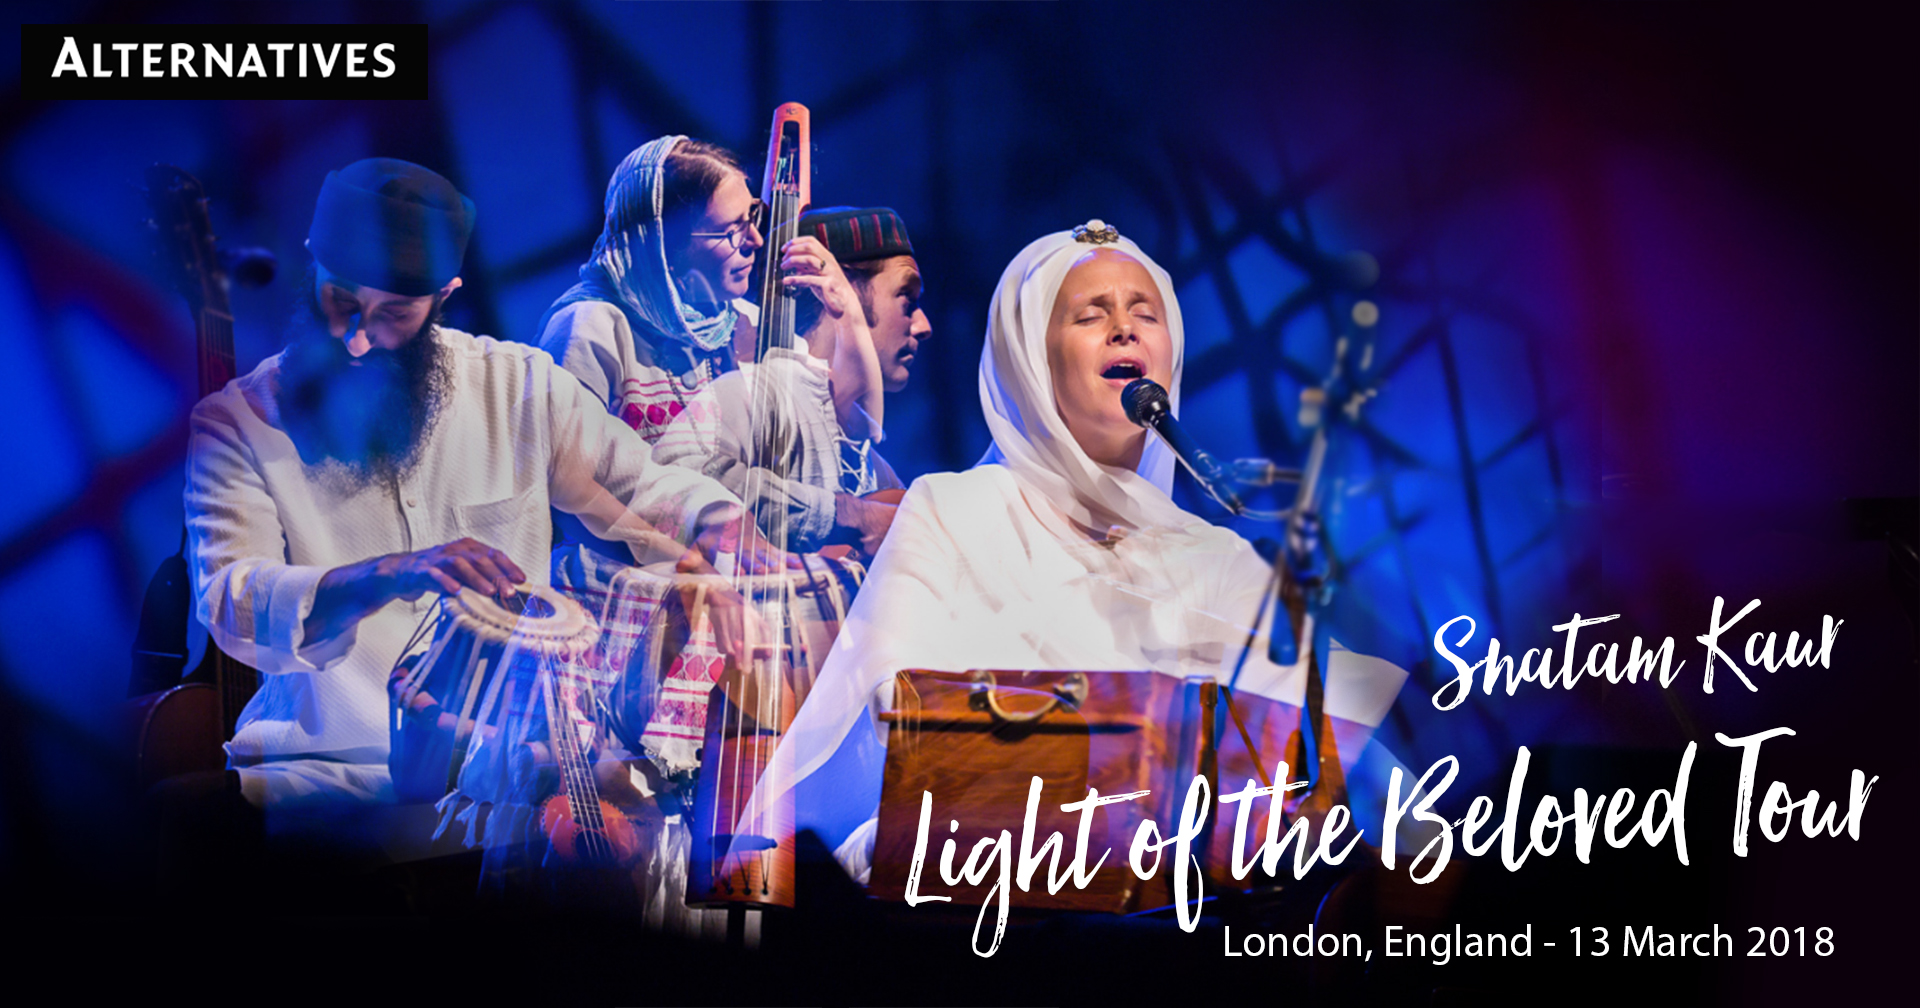 Tickets for Snatam Kaur's Light of the Beloved Tour in London from BrightStar Live Events